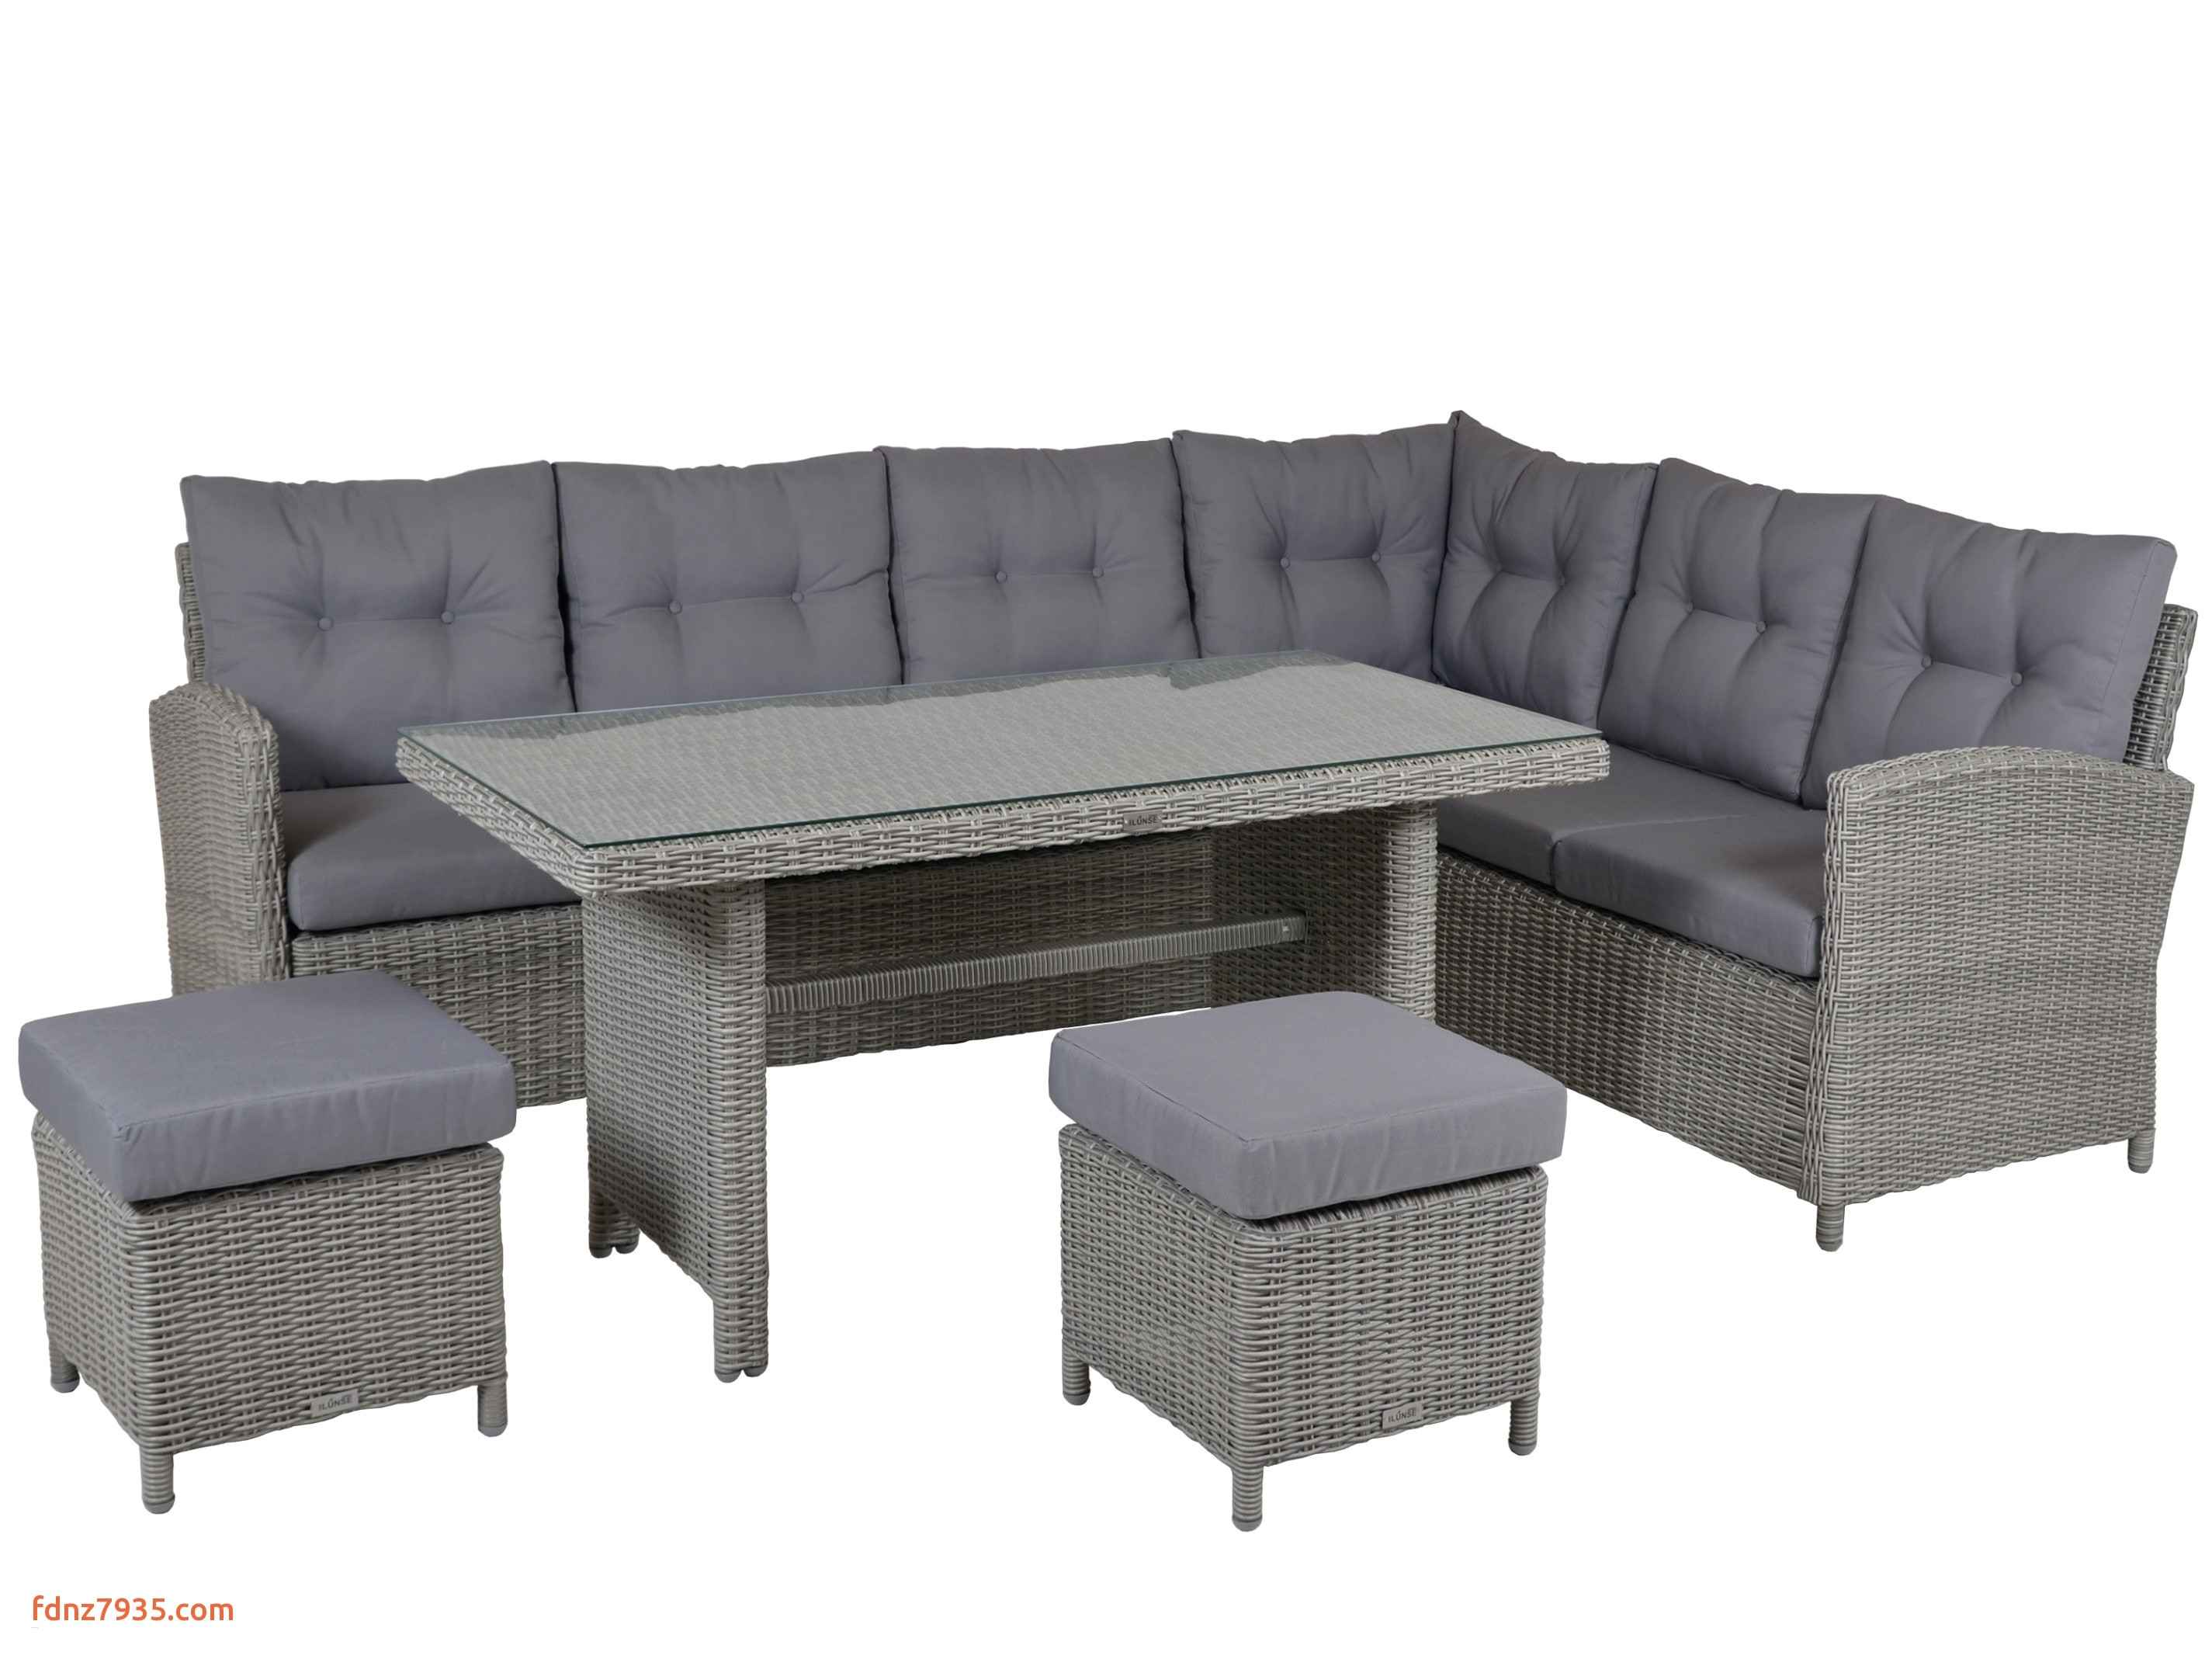 outdoor dining tables brilliant patio dining sets clearance new luxurios wicker outdoor sofa 0d